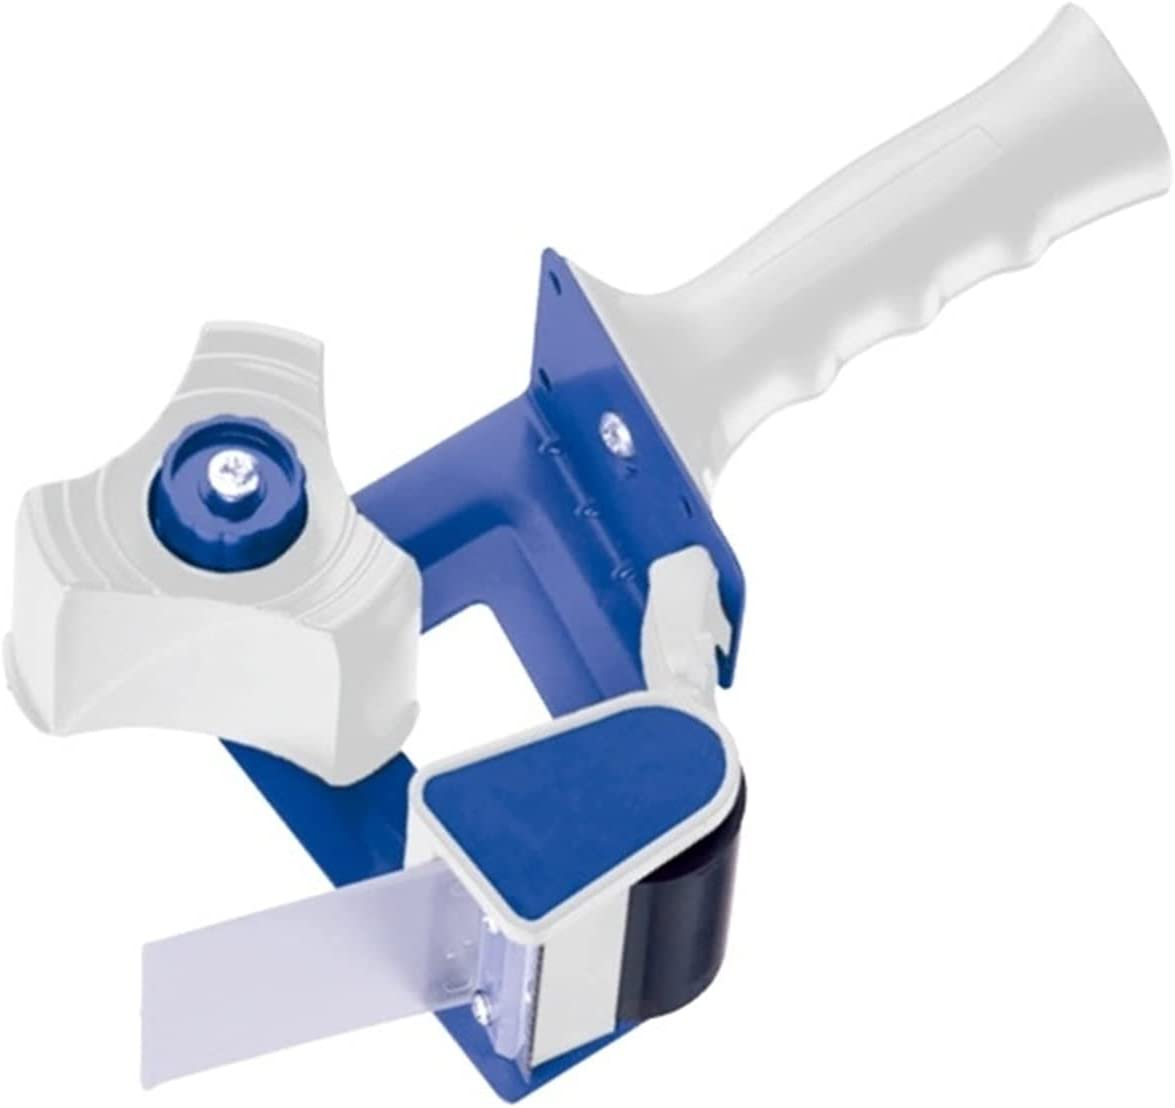 FHYTGBS Recommendation Packing Tape Dispenser-Cutter Limited price sale for Home Di Packer Sealing